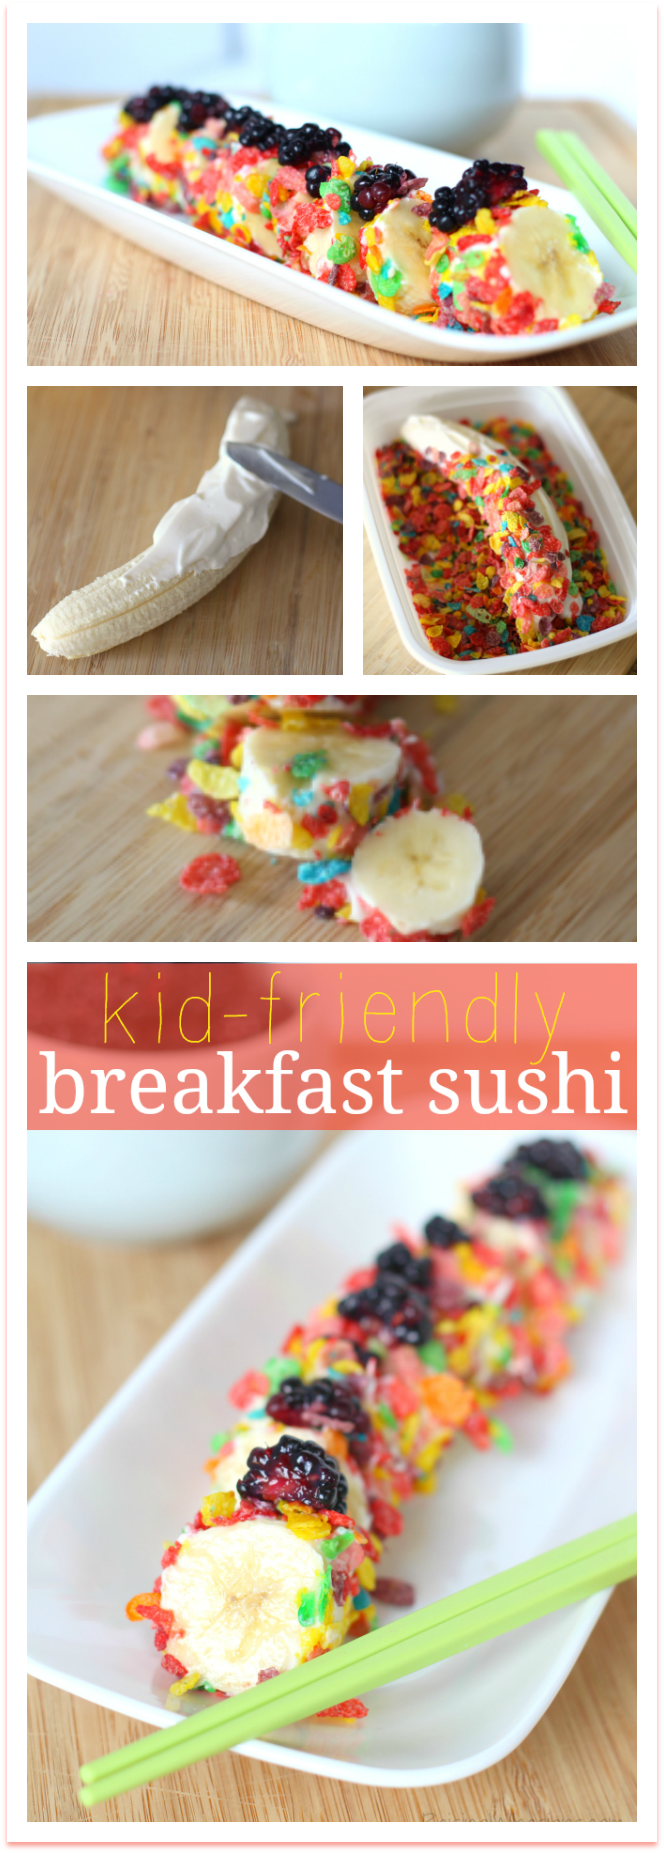 Kid Friendly Breakfast Sushi Recipe | Quick and FUN kids breakfast idea - perfect for back-to-school! Yummy Breakfast Sushi for kids with Fruity Pebbles - Perfect for your back to school meal plan or as part of a kids brunch party. Would also make a great after school snack.